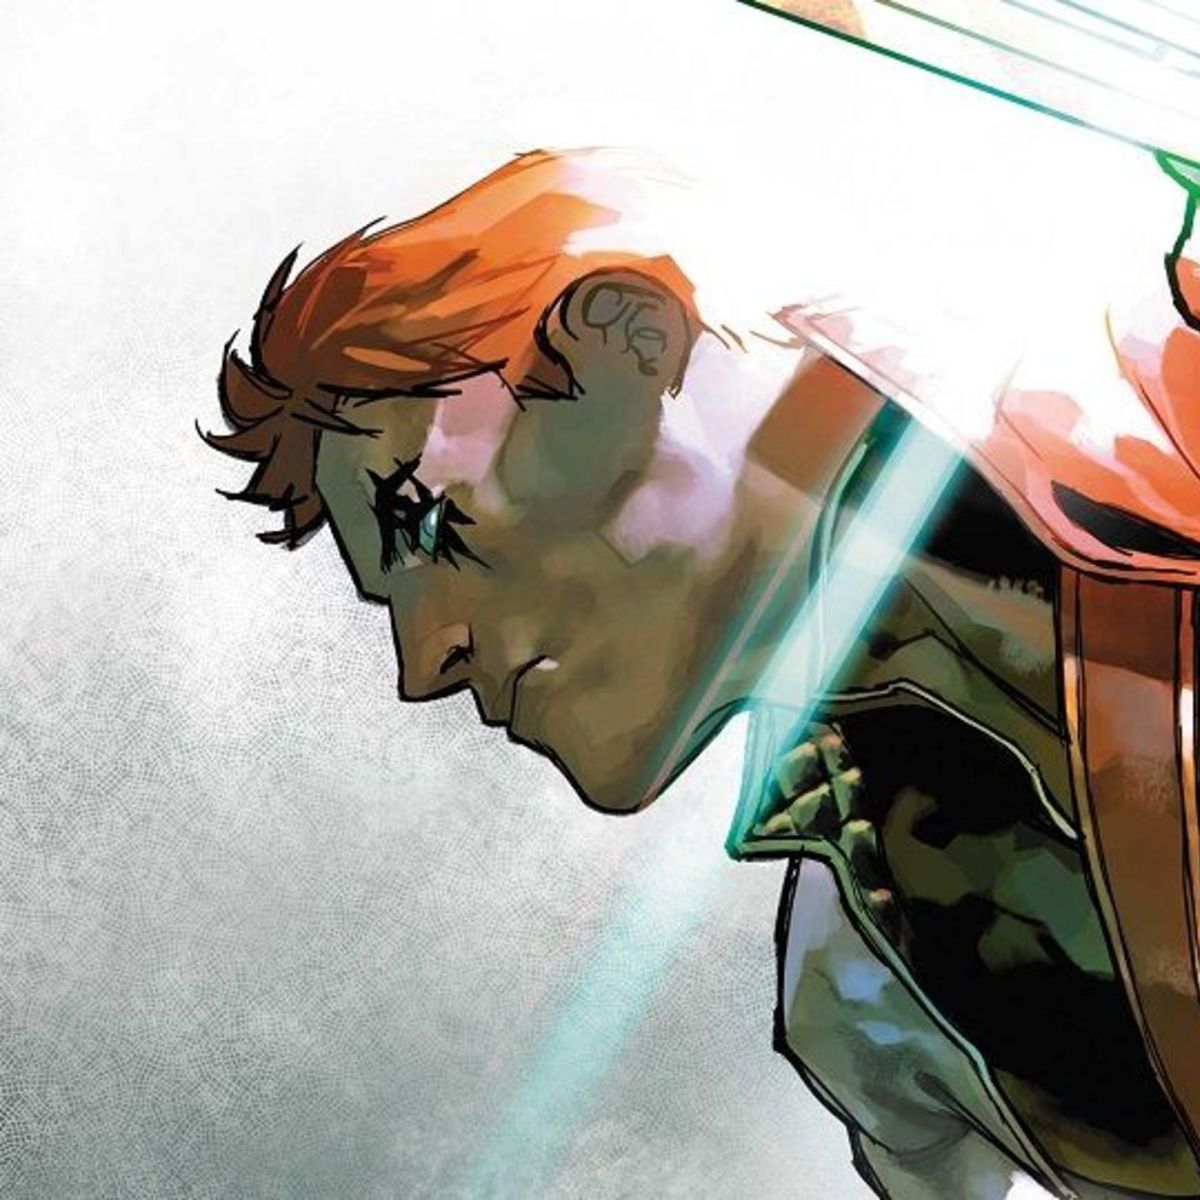 Shatterstar #1 close-up